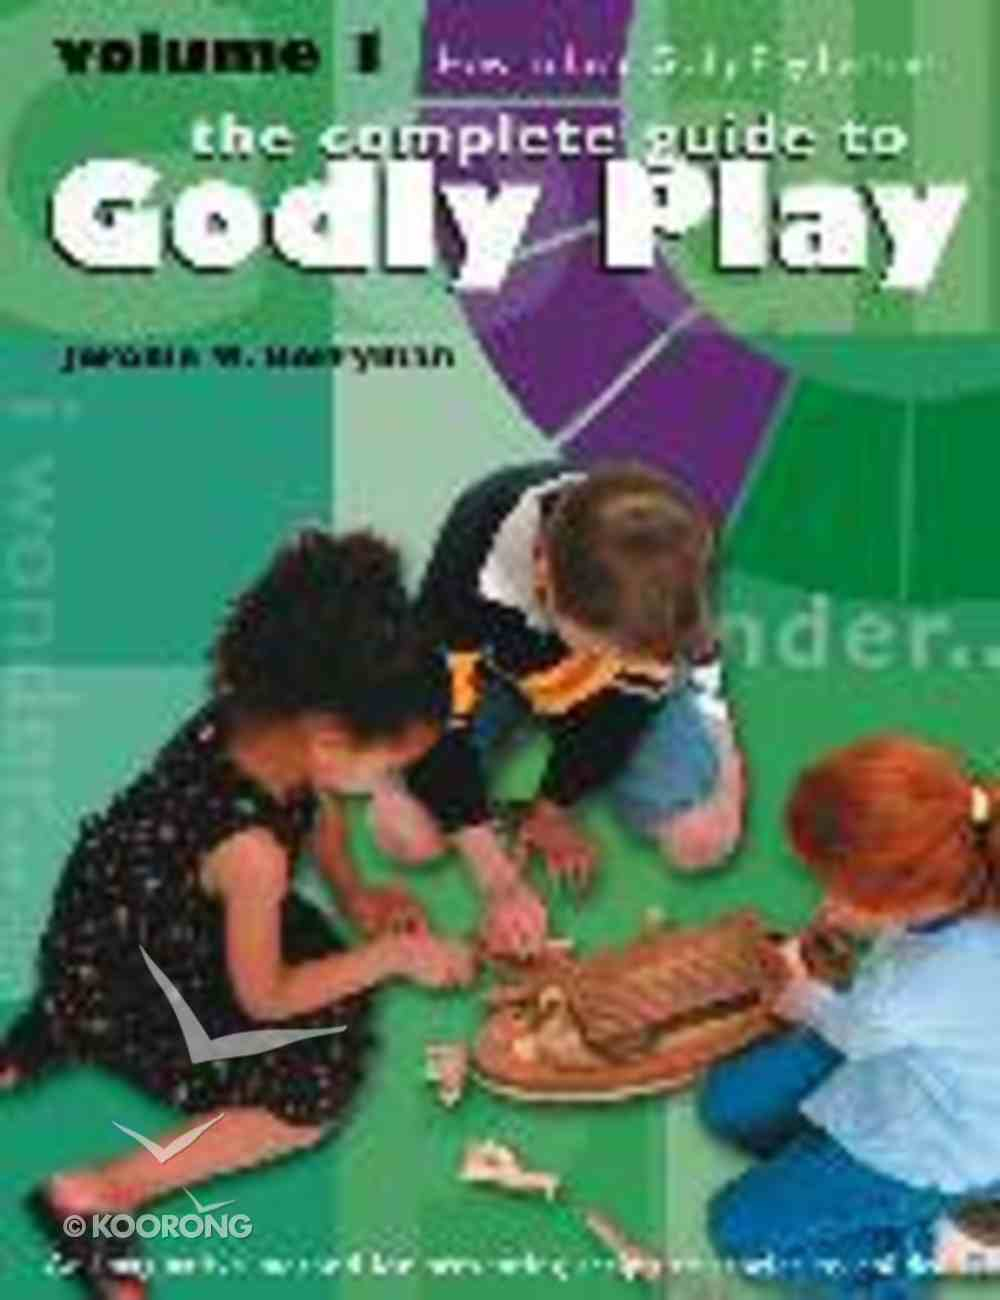 Complete Guide to Godly Play, the - Volume 1 - How to Lead Godly Play Lessons: (#01 in The Complete Guide To Godly Play Series) Paperback